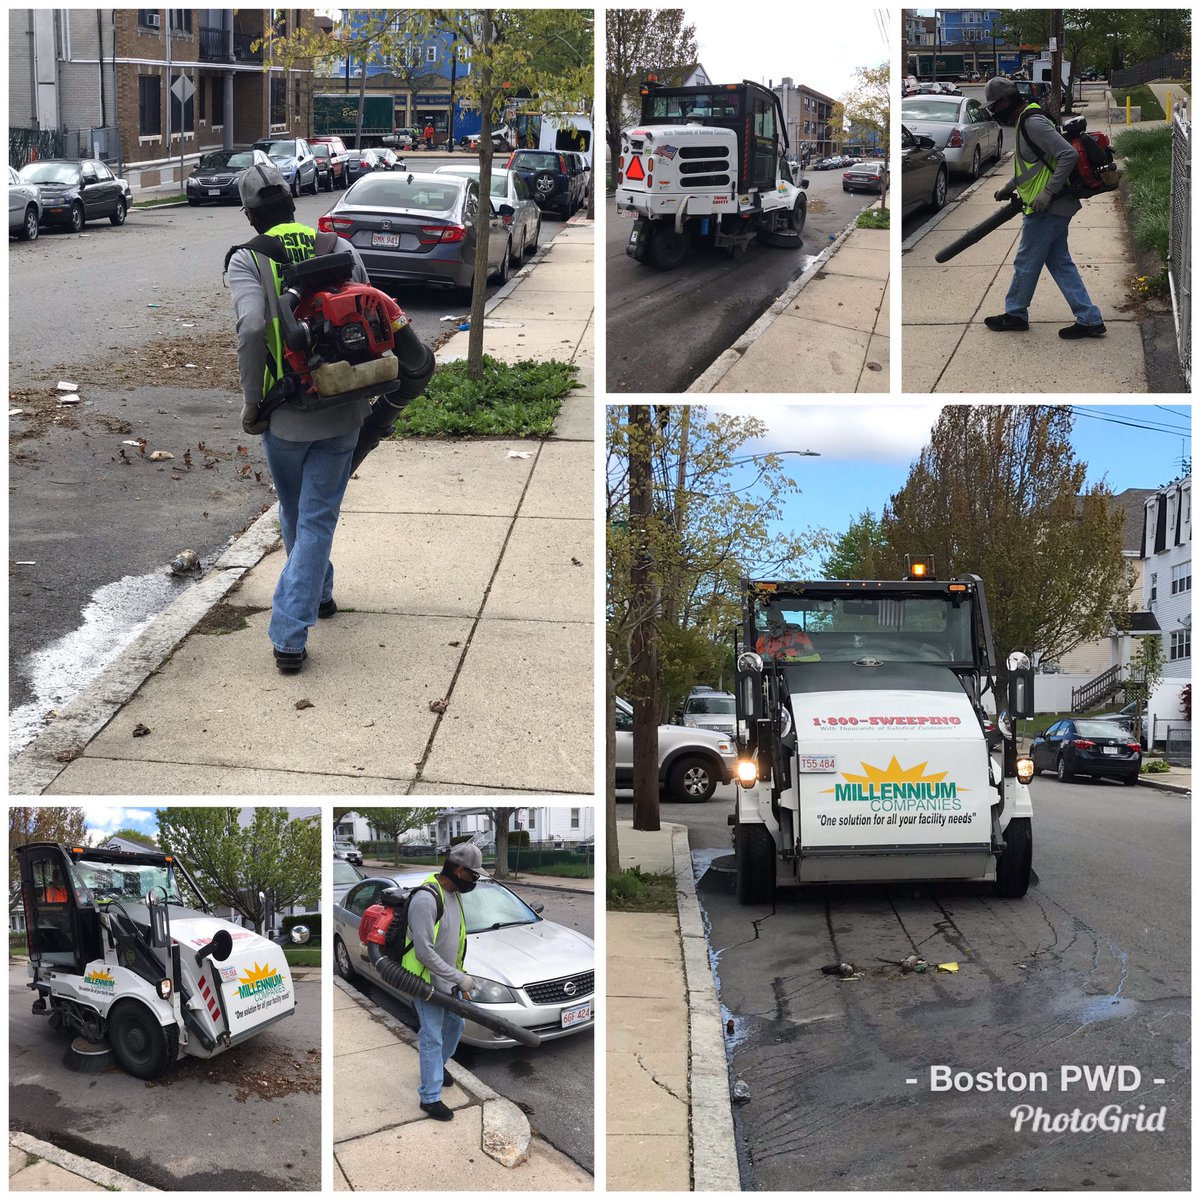 PWD's District 7 crew is busy this morning cleaning litter and debris on Hazelton St. in #Mattapan.